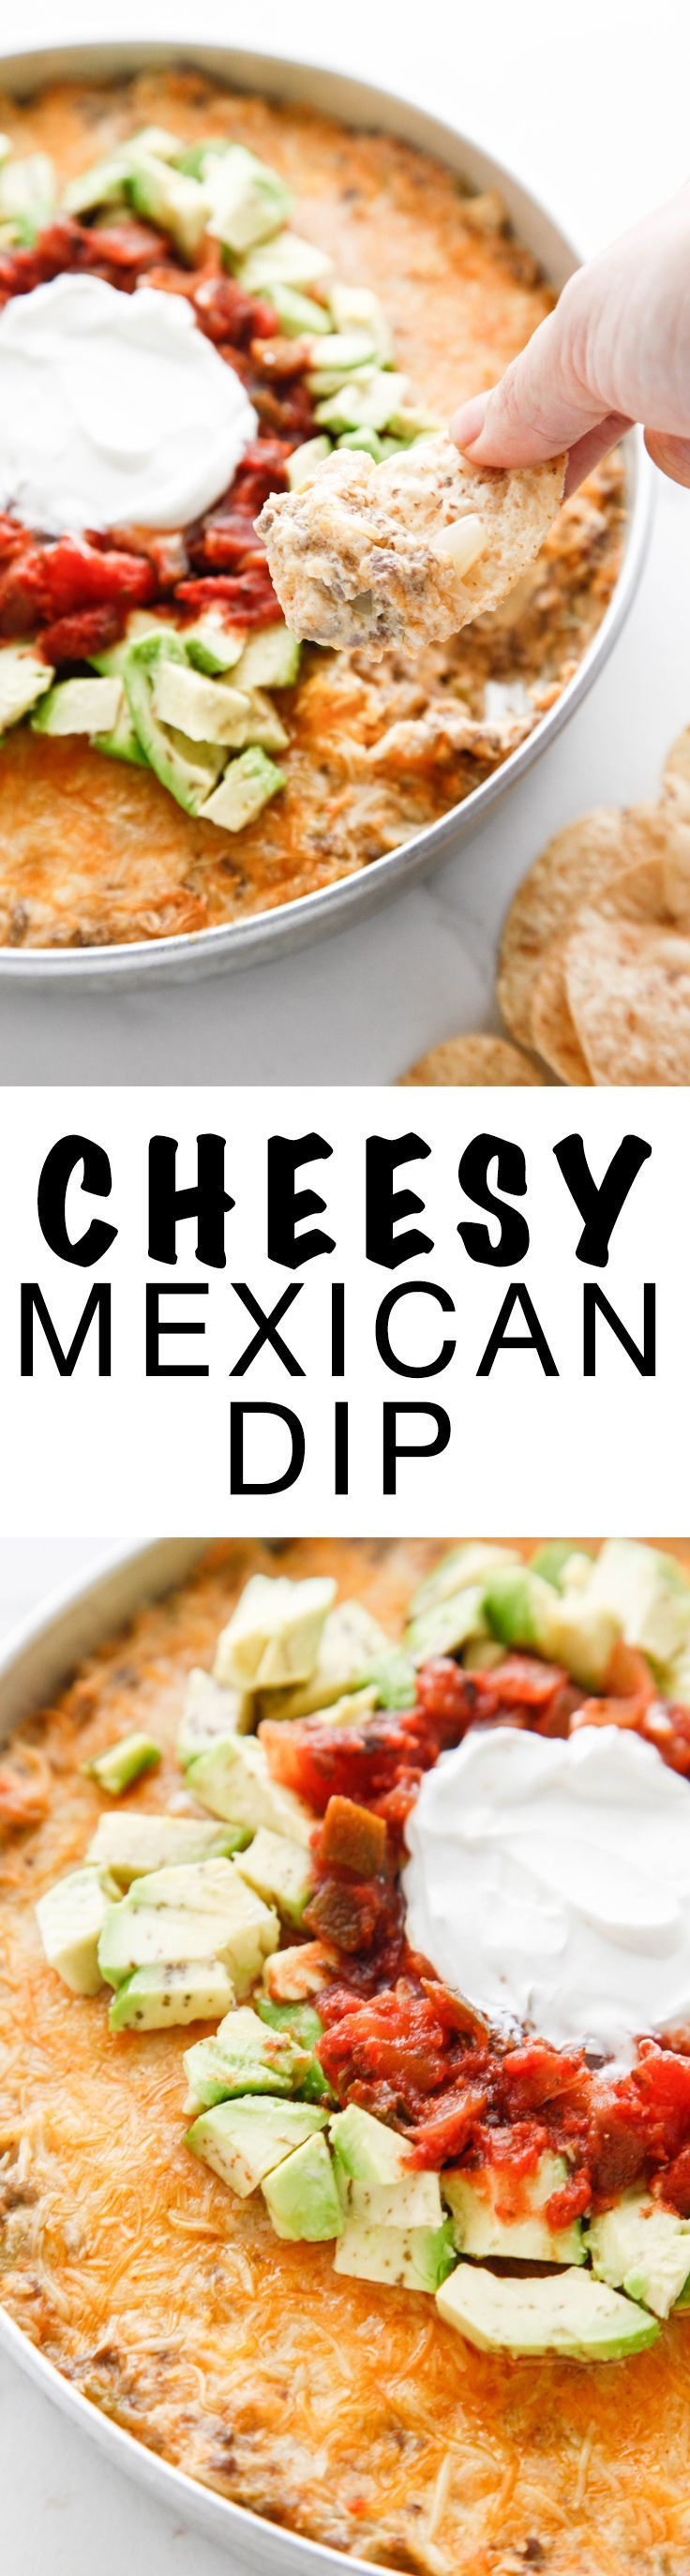 Easy, cheesy and perfect for sharing! This recipe for Cheesy Mexican Dip is a crowd pleaser! Via @thebrooklyncook